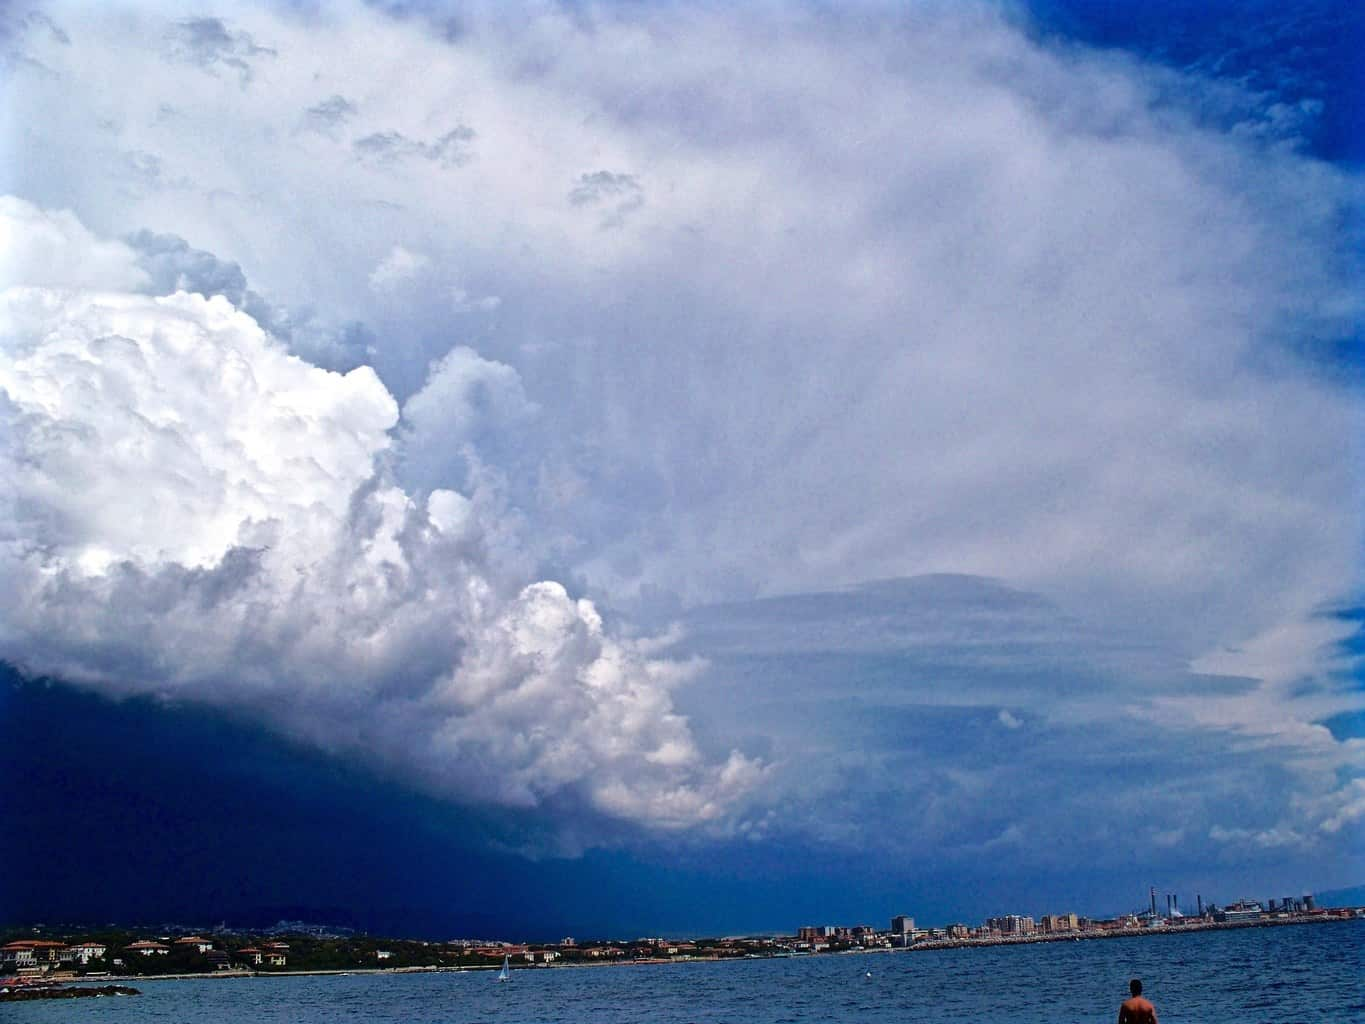 * Coming squall line on the sea * My shot of a squall line coming in the sea, when i was here for holidays.